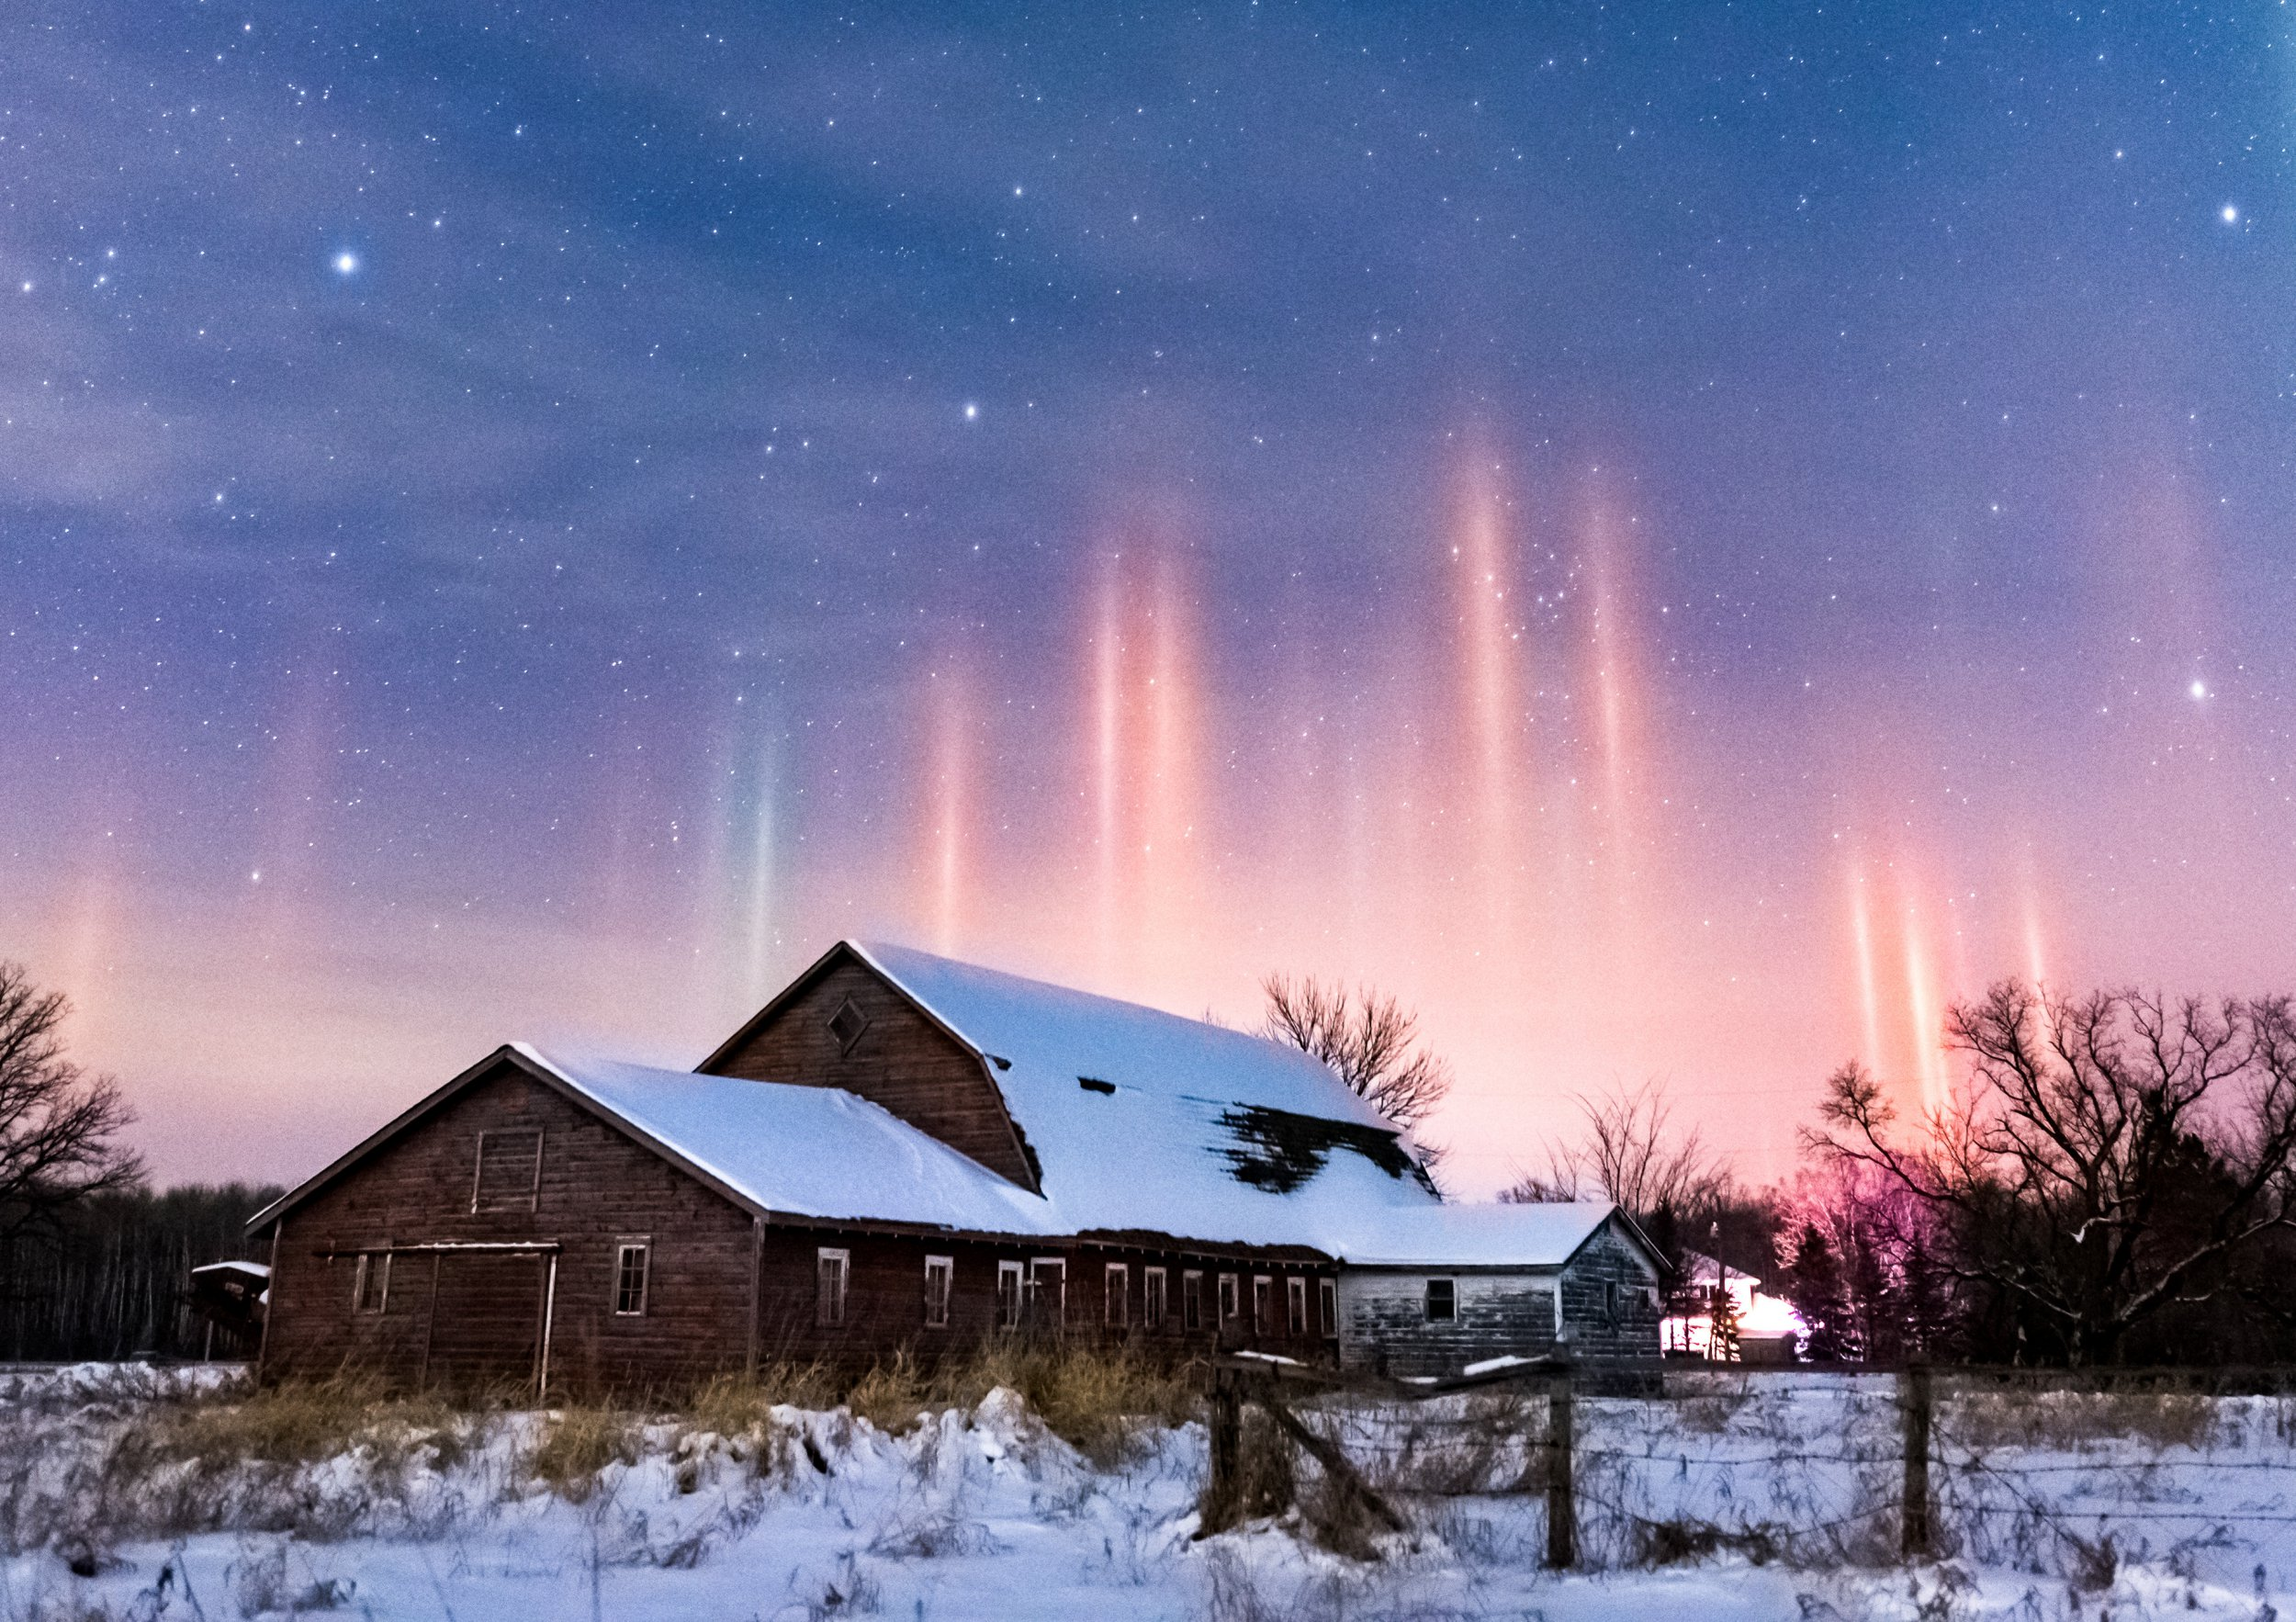 Picture supplied by Brent Mckean/Bav Media 07976 880732. Standalone picture shows the unusual atmospheric optical phenomenon of Light Pillars in Eastern Manitoba, Canada on Sunday evening (Dec 30th). A photographer has taken extraordinary pictures of rare LIGHT PILLARS extending into the night sky after sunset. Brent Mckean took the unusual photos of the atmospheric optical phenomenon in Eastern Manitoba, Canada in sub zero temperatures on Sunday evening (Dec30). Light pillars are created by the reflection of light from millions of tiny ice crystals suspended in the atmosphere. They form a vertical band of light which appears to extend above a light source - in this case the lights from buildings.